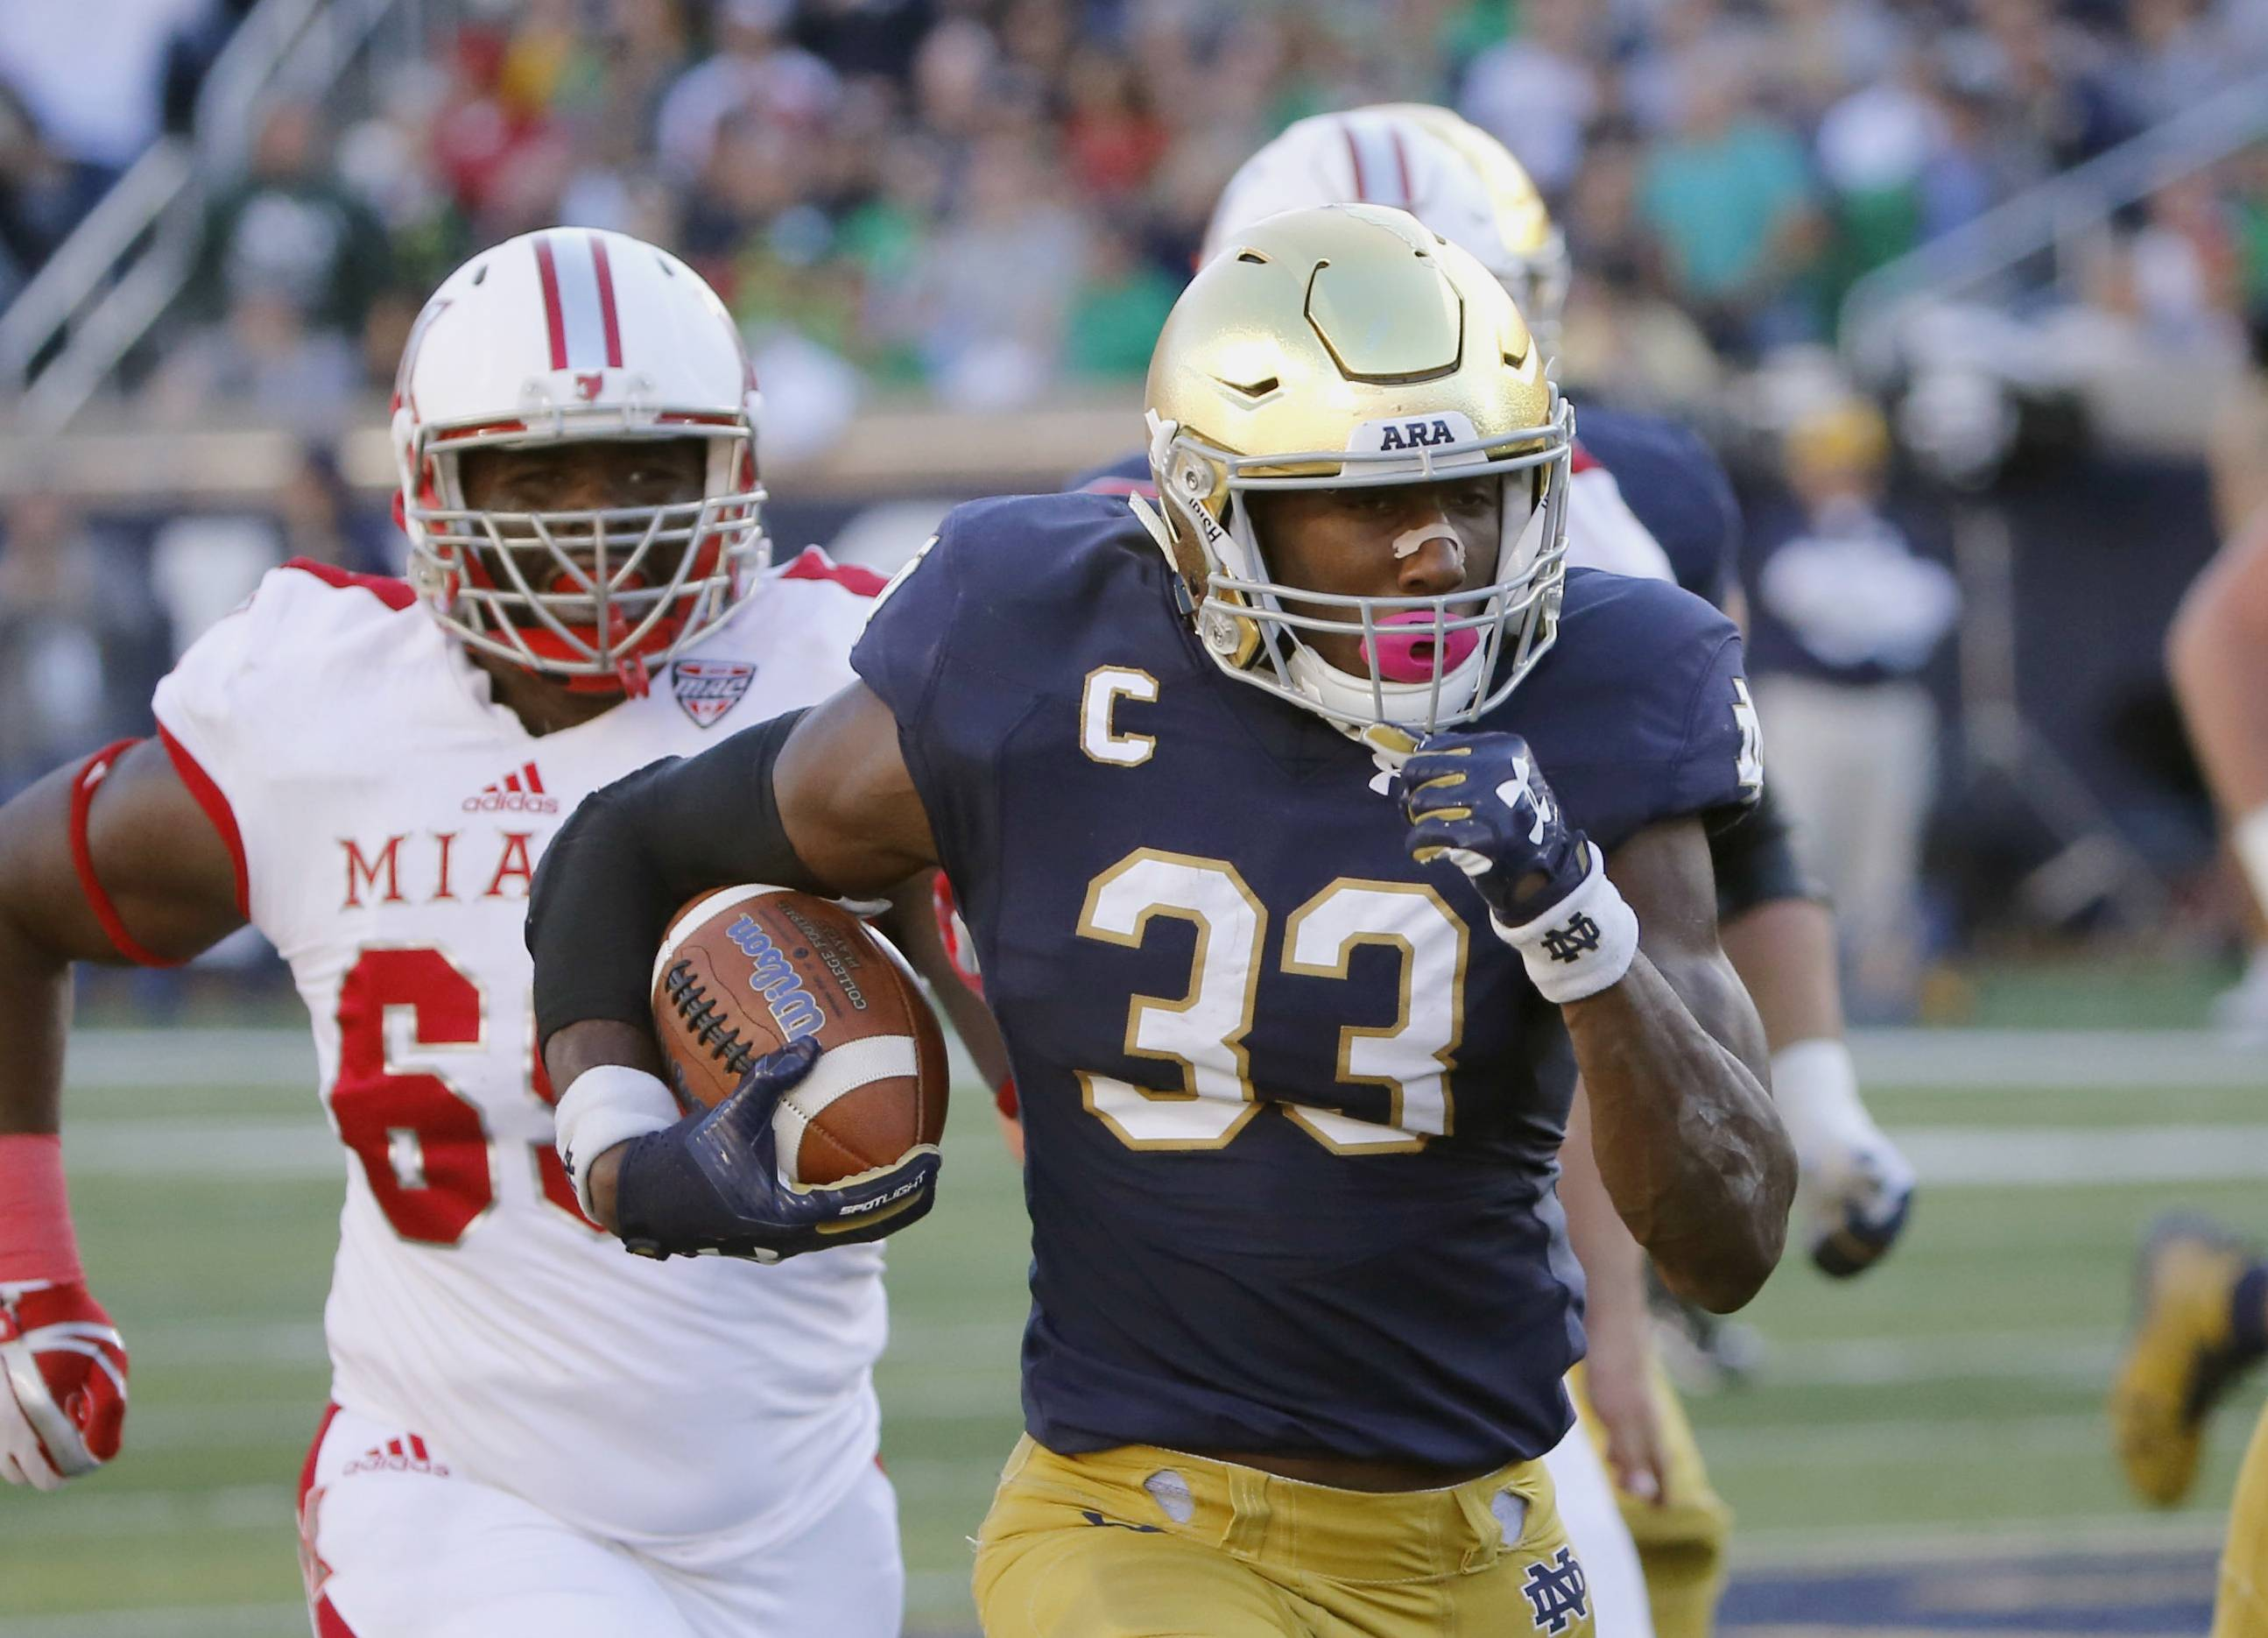 Notre Dame running back Josh Adams heads for the end zone for his second touchdown during the Irish's win over Miami of Ohio. The noise about a playoff bid and the Heisman Trophy is getting louder around No. 5 Notre Dame as it prepares for the visit from Wake Forest on Saturday, Nov. 4. Junior running back Adams, fifth in the nation in rushing with 1,169 yards, has emerged as a legitimate contender for the Heisman and other postseason awards.